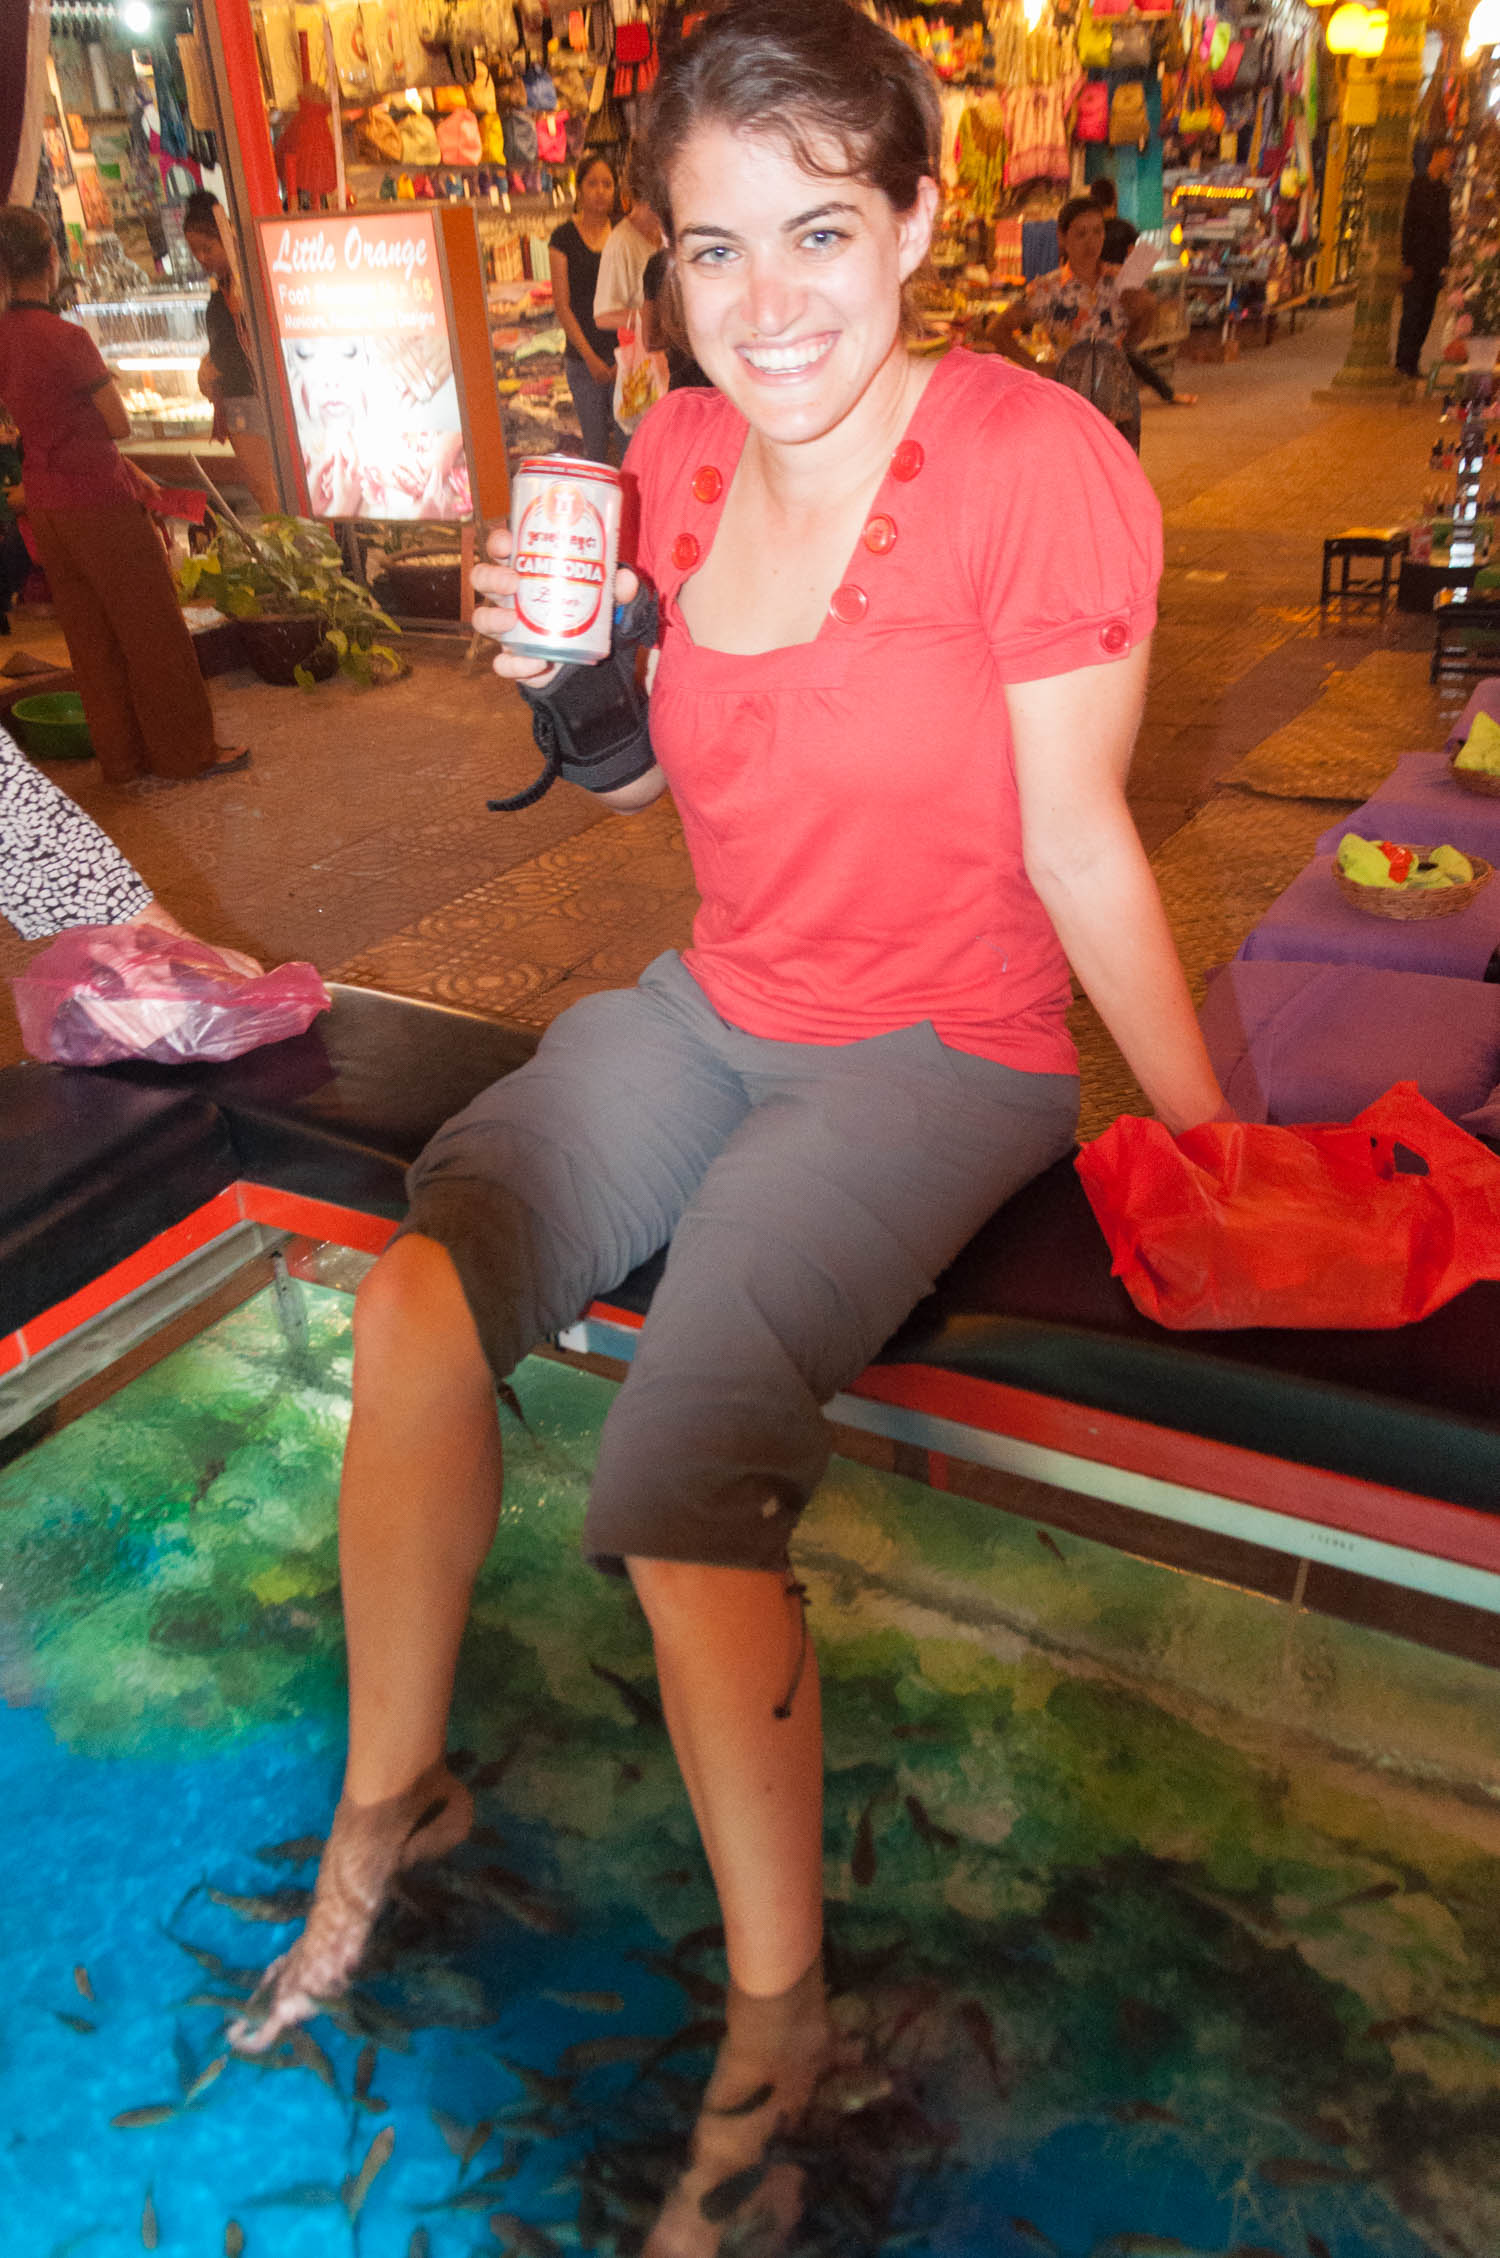 - Walking along Pub Street in Siem Reap, Cambodia I saw this girl with her feet in this huge fish-tank, and I took the photo above. I asked her if it tickled, she said it did at first, but then you get used to it. The fish feed on your dead skin cells, cleaning it while they eat. It's sort of like a pedicure, when they scrape your feet.So a little later that night, I tried it. I had heard about it from friends, so I figured why not. I walked up to a place with a giant fish tank and asked how much it cost.$2 GETS YOU A BEER &30 MINUTES IN THE TANKSeemed like a good deal to me. I can't remember the last time I laughed that hard. A few of us stuck our feet in and hysterics ensued for the first 5 or 10 minutes, but eventually it stopped tickling and we began to watch the patterns of the fish. Big fish claiming territory on the best tasting feet and scaring away the smaller fish. It was a very cool experience, but one I'll remember next time I see tilapia on a menu.